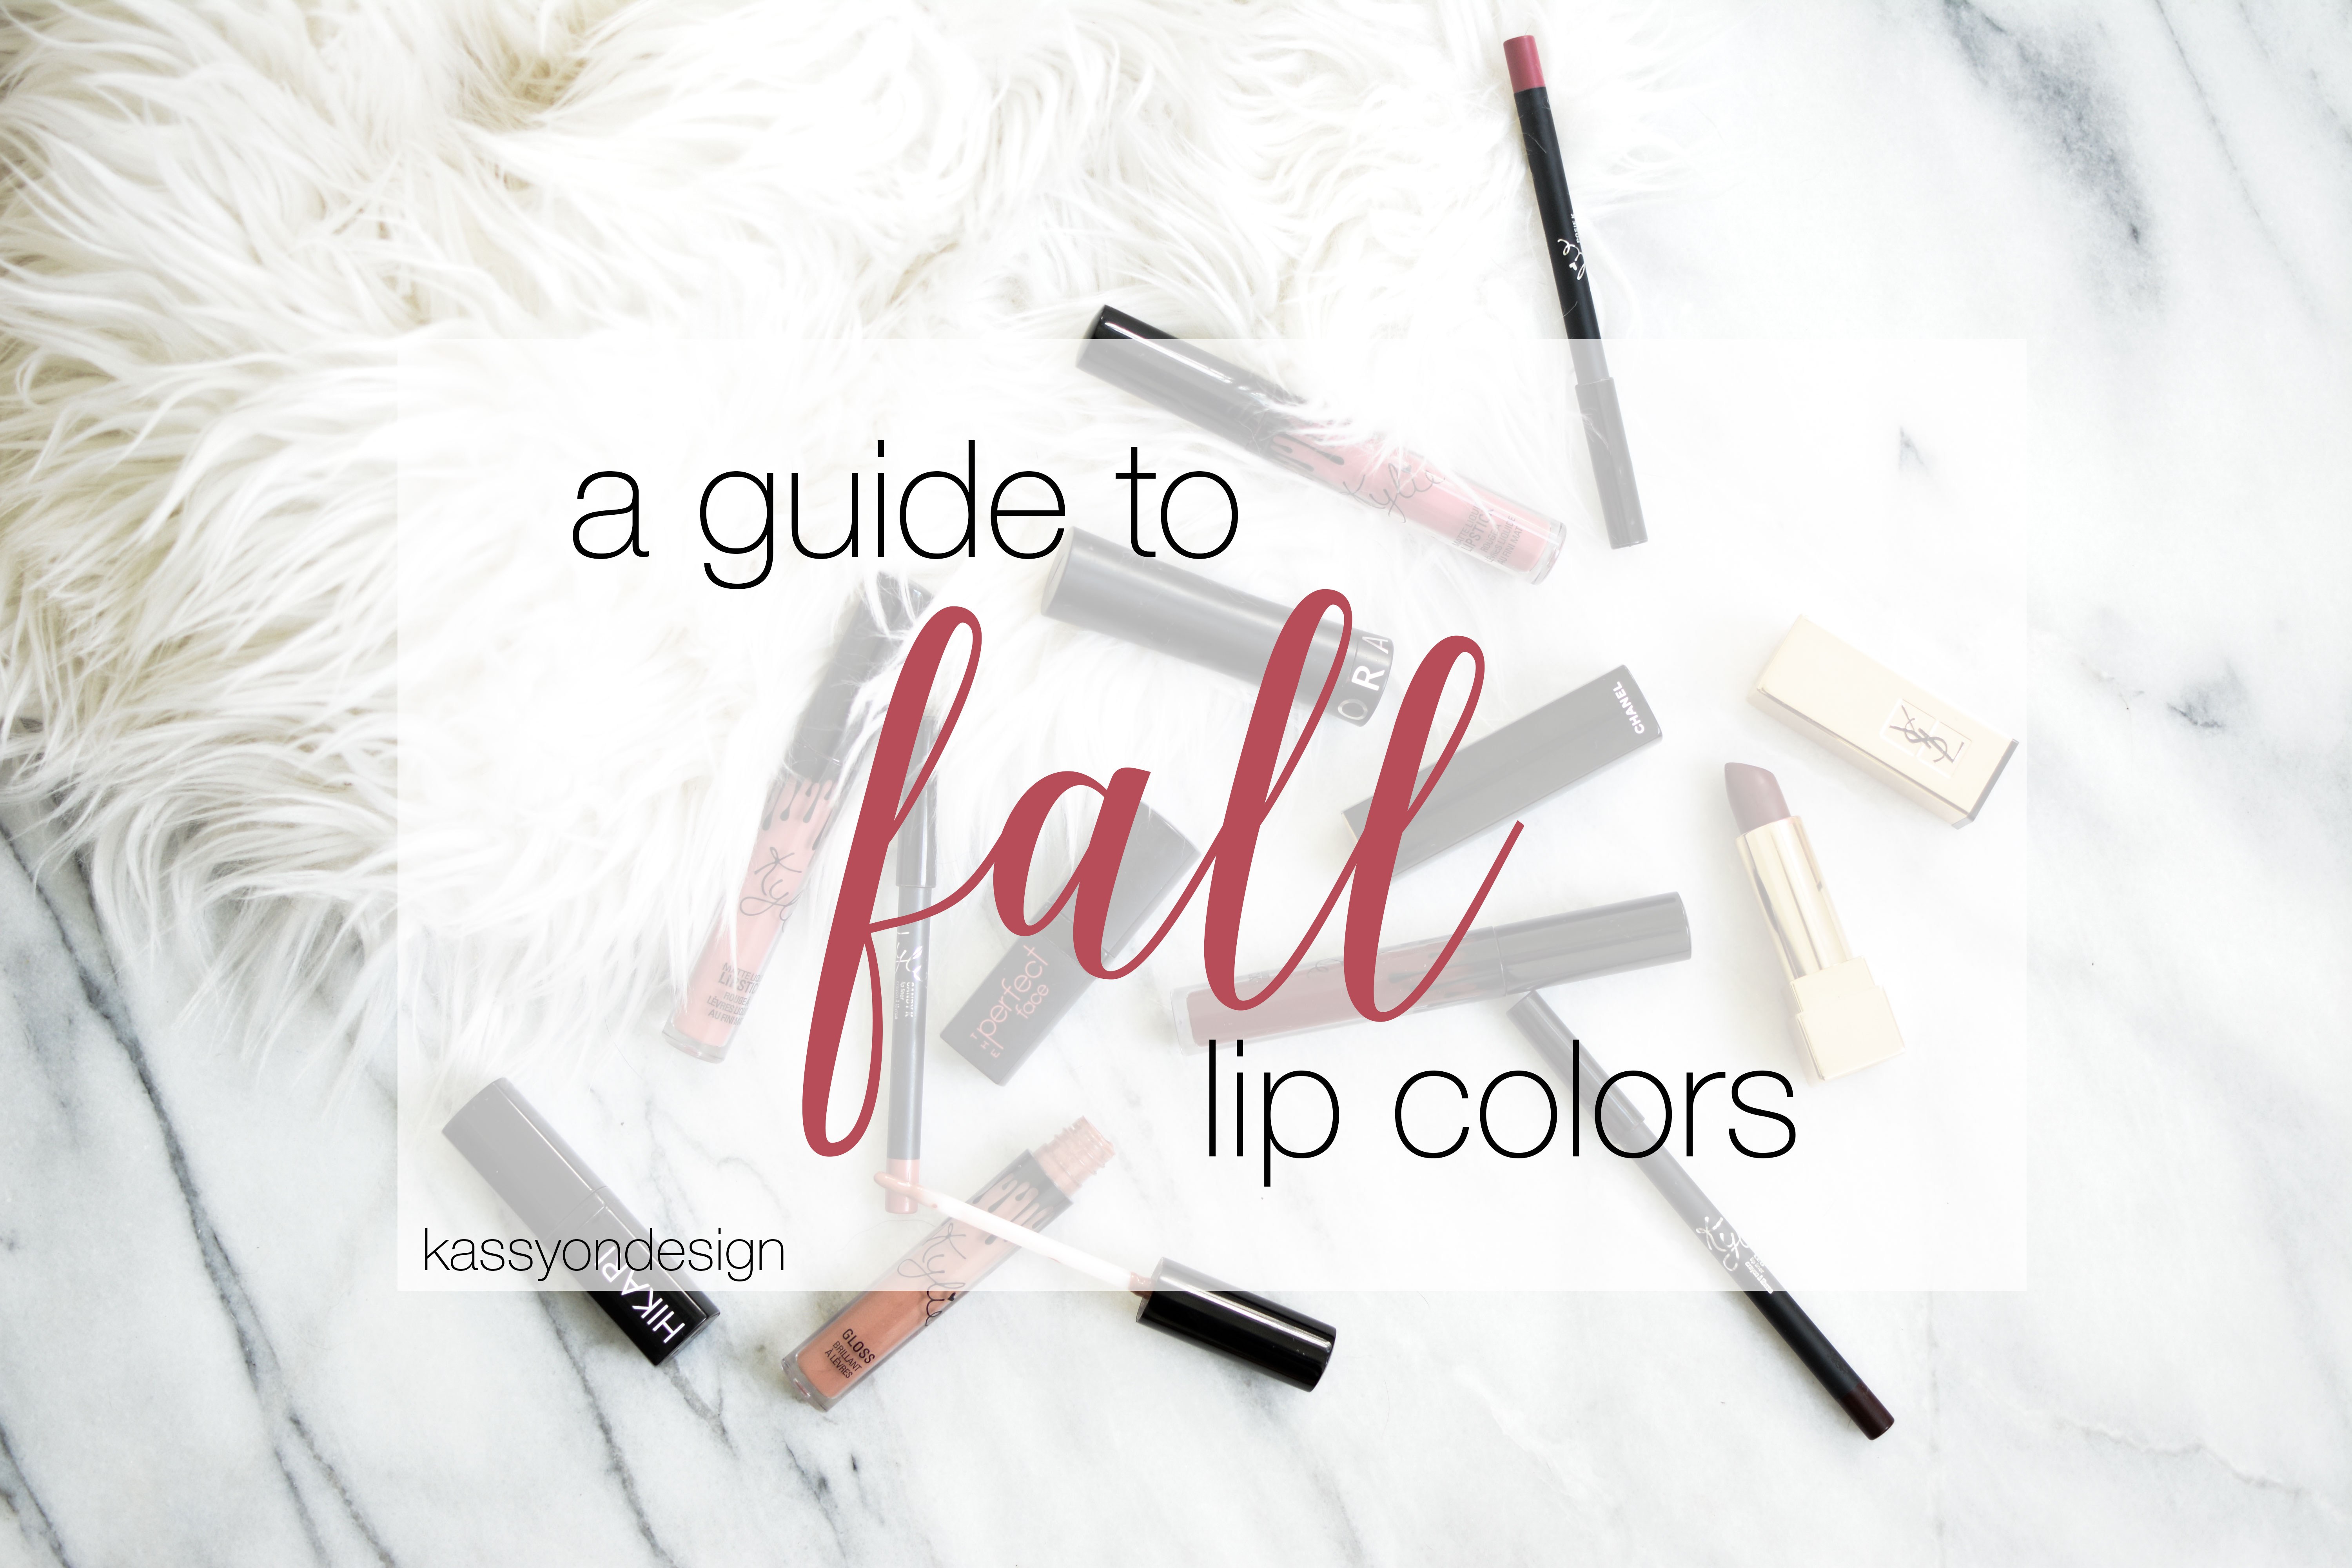 guide_to_fall_lip_colors-2